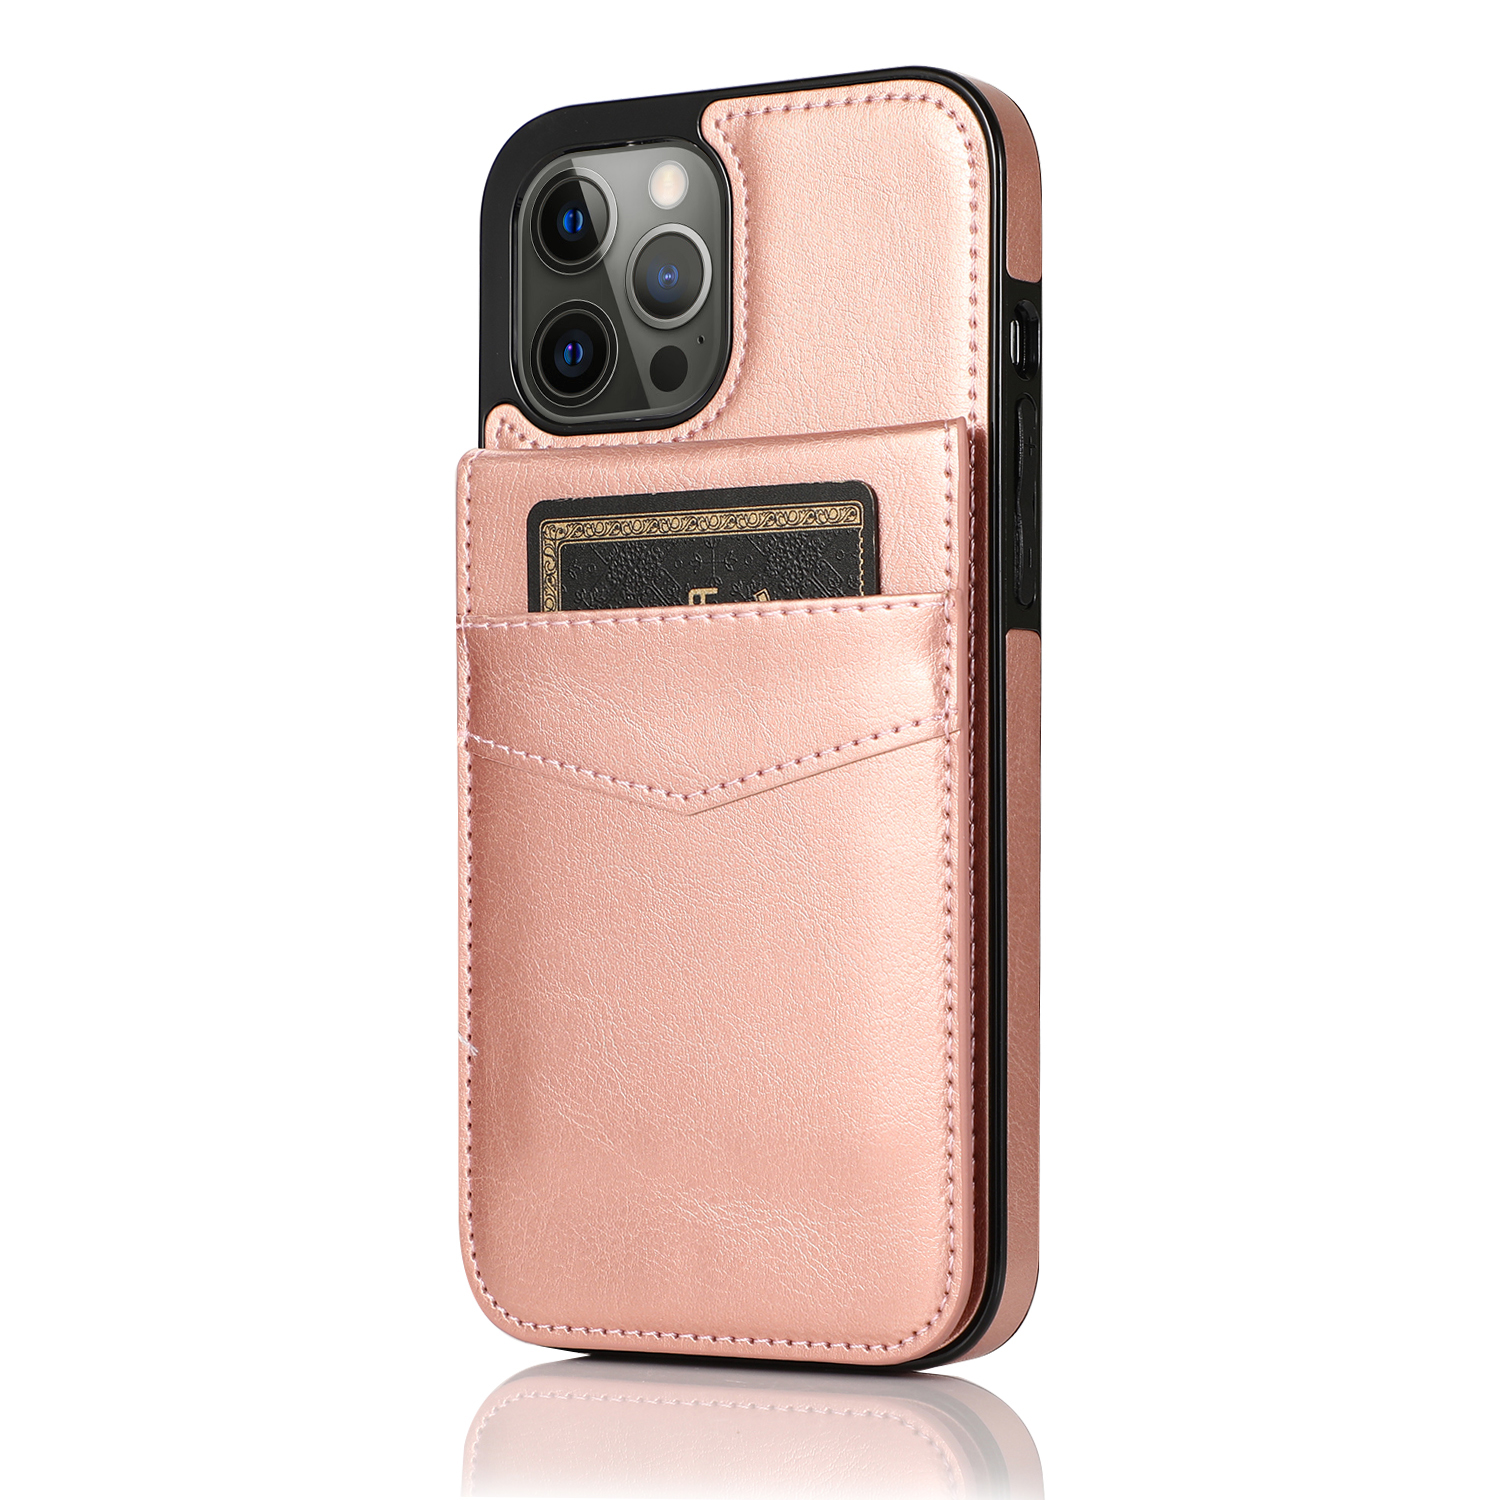 Mobile Phone Case Solid Color Plug-in Card Protective Case Cover For Iphone12 Rose gold_iphone12 mini 5.4